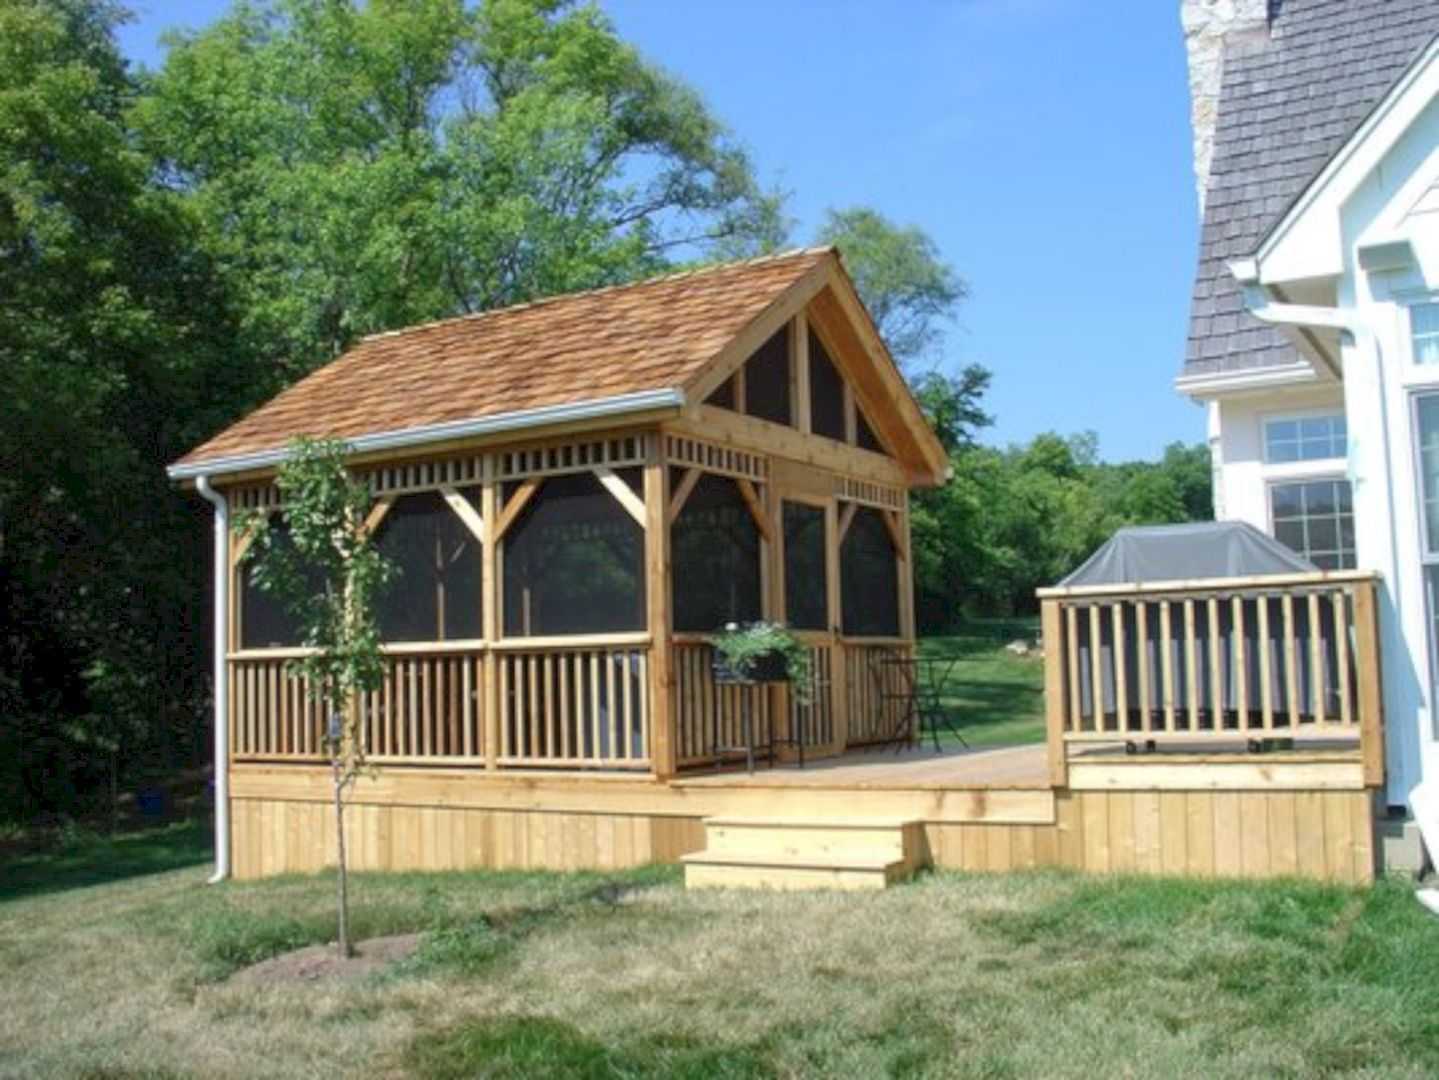 8 Ways To Have More Appealing Screened Porch Deck Screened Gazebo Screen House Gazebo On Deck